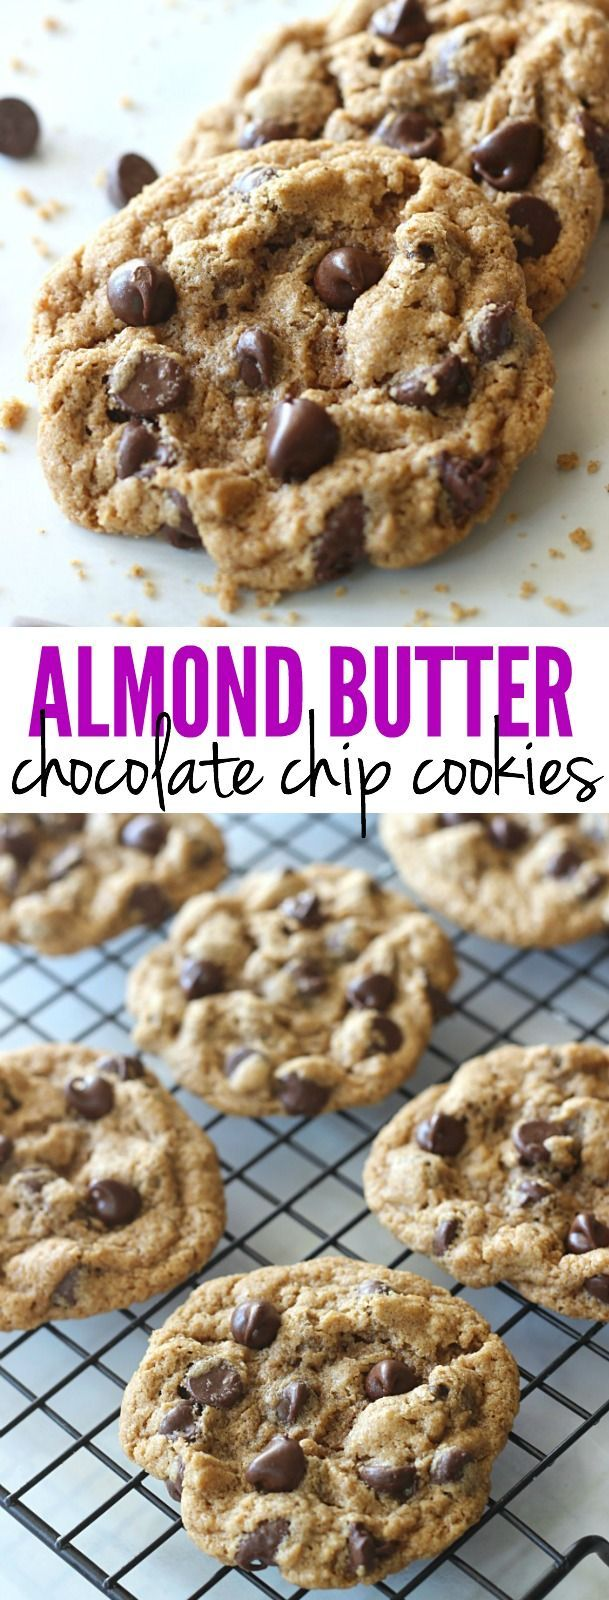 These Almond Butter Chocolate Chip Cookies are made with no flour, oil, or butter. They are perfectly chewy, full of chocolate, and downright addicting!: